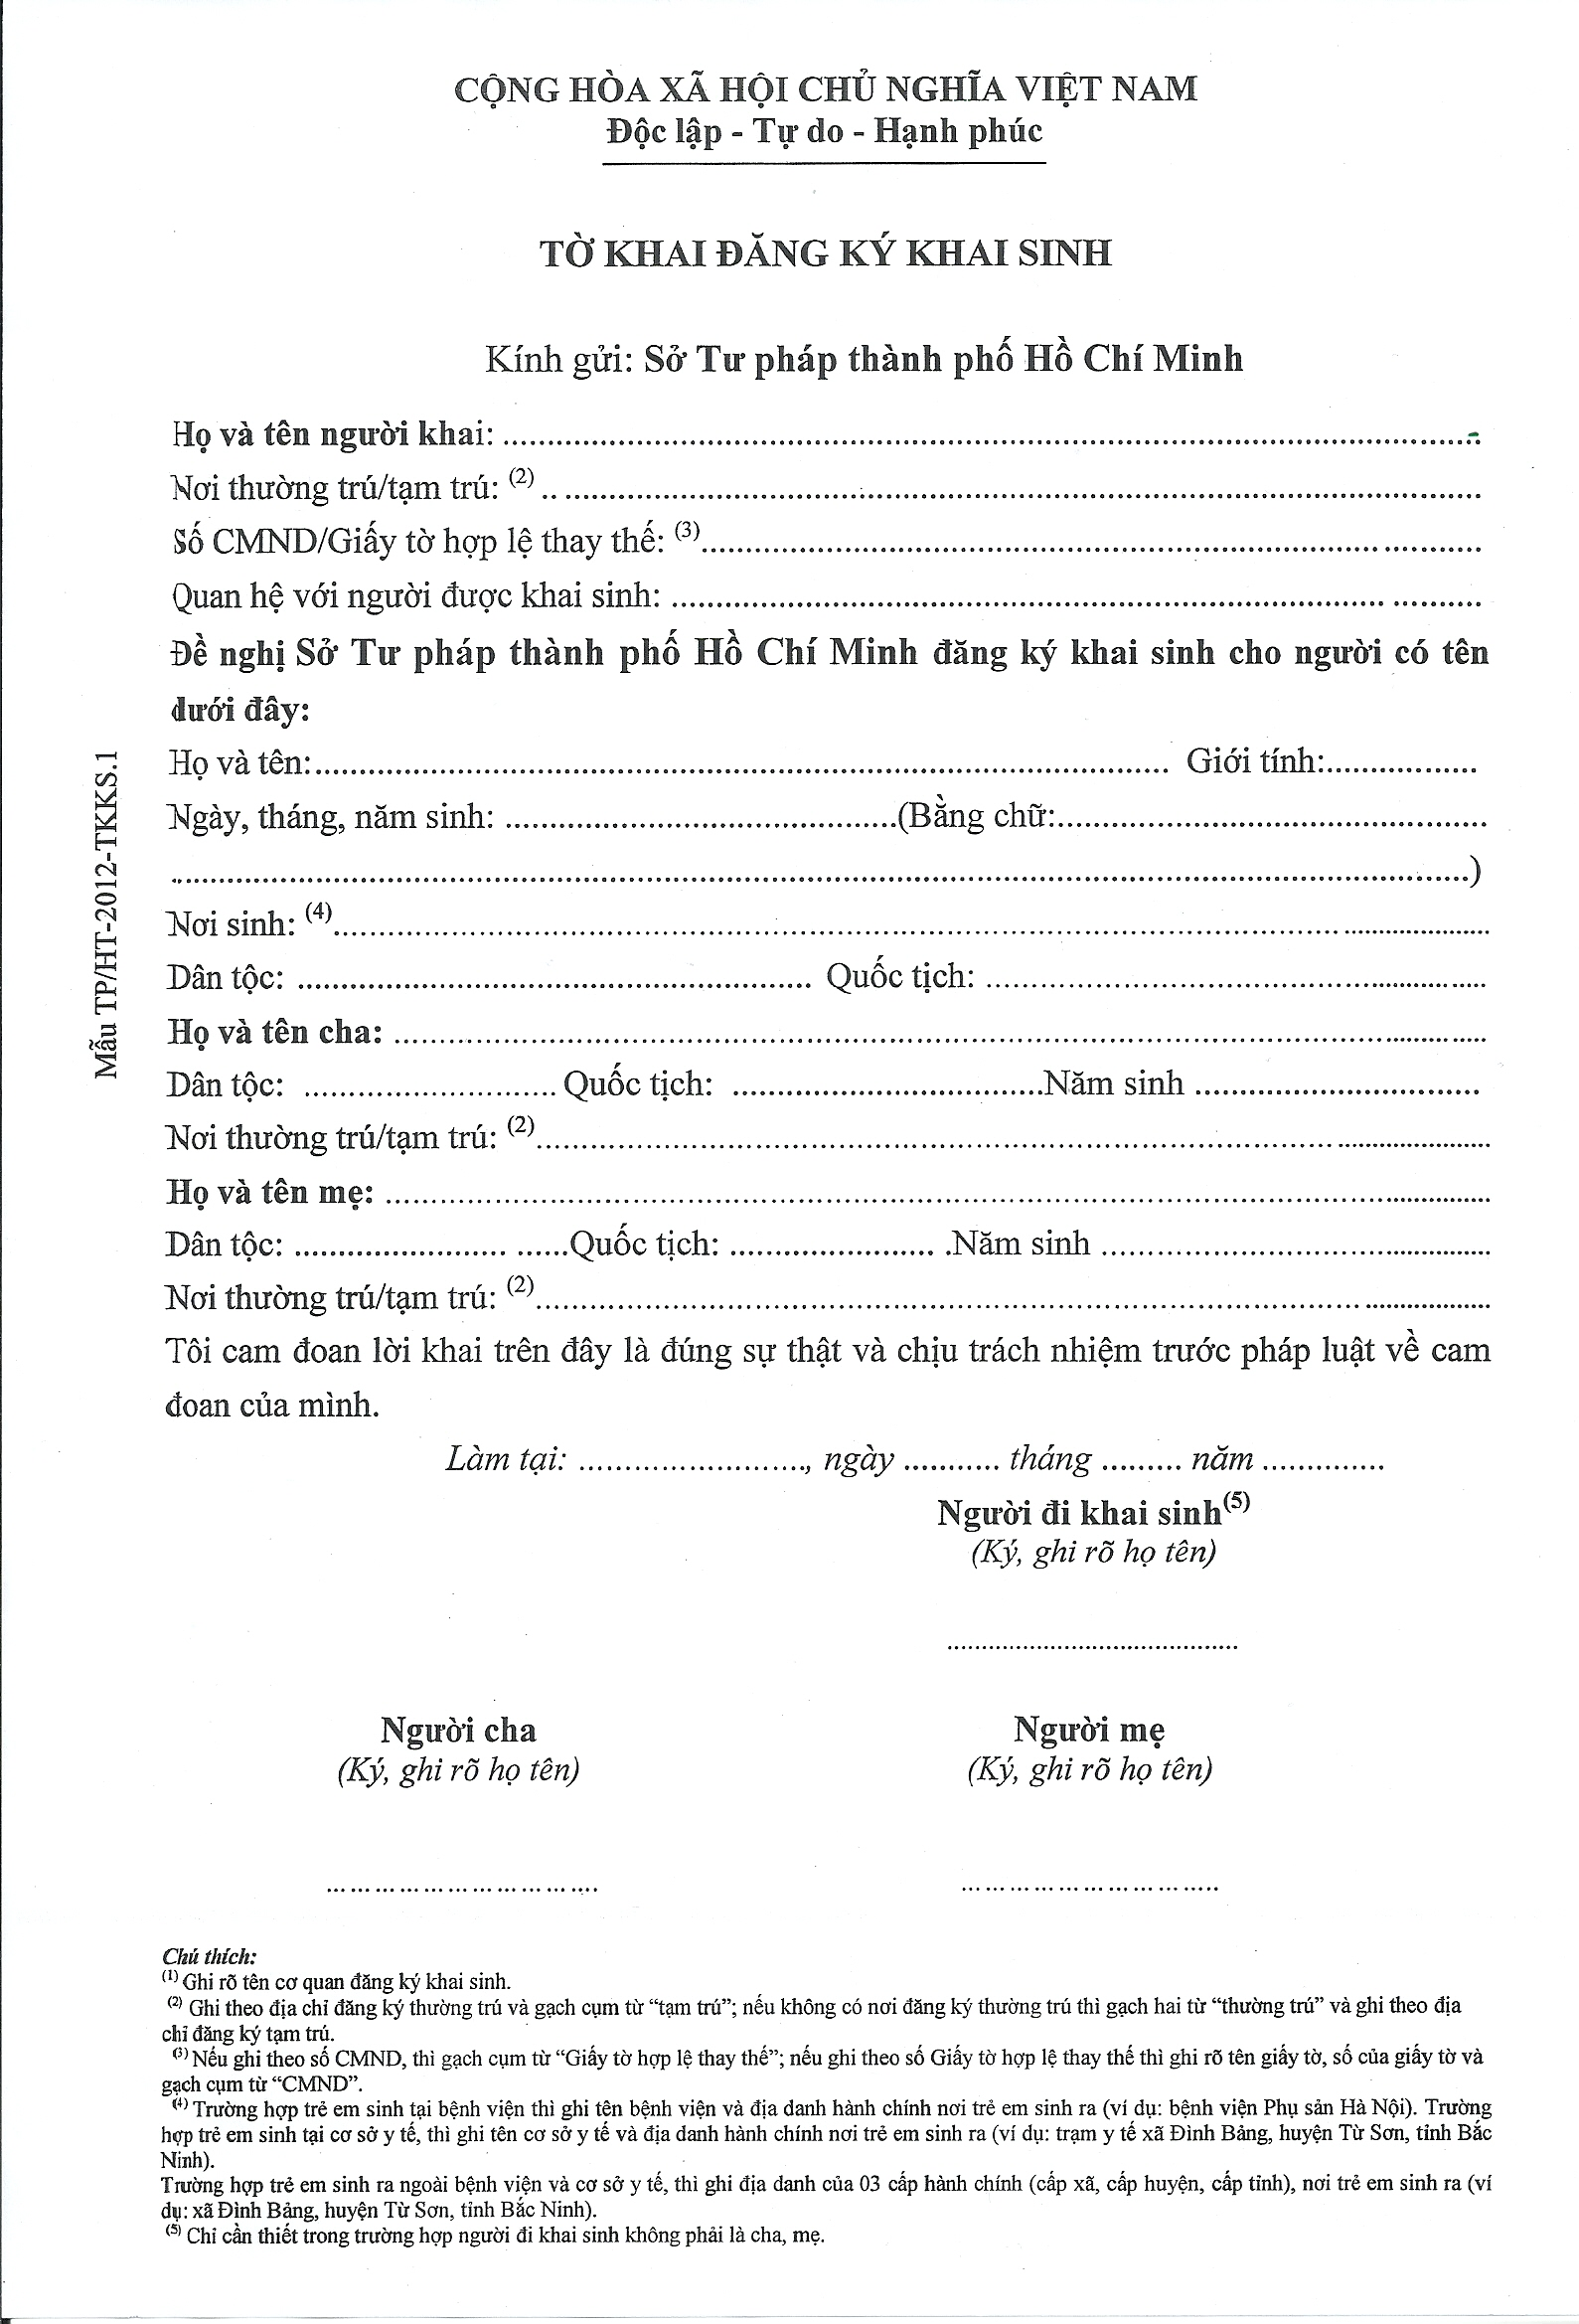 How to get a birth certificate in vietnam a summary hello saigon child birth registration form from the moj aiddatafo Image collections